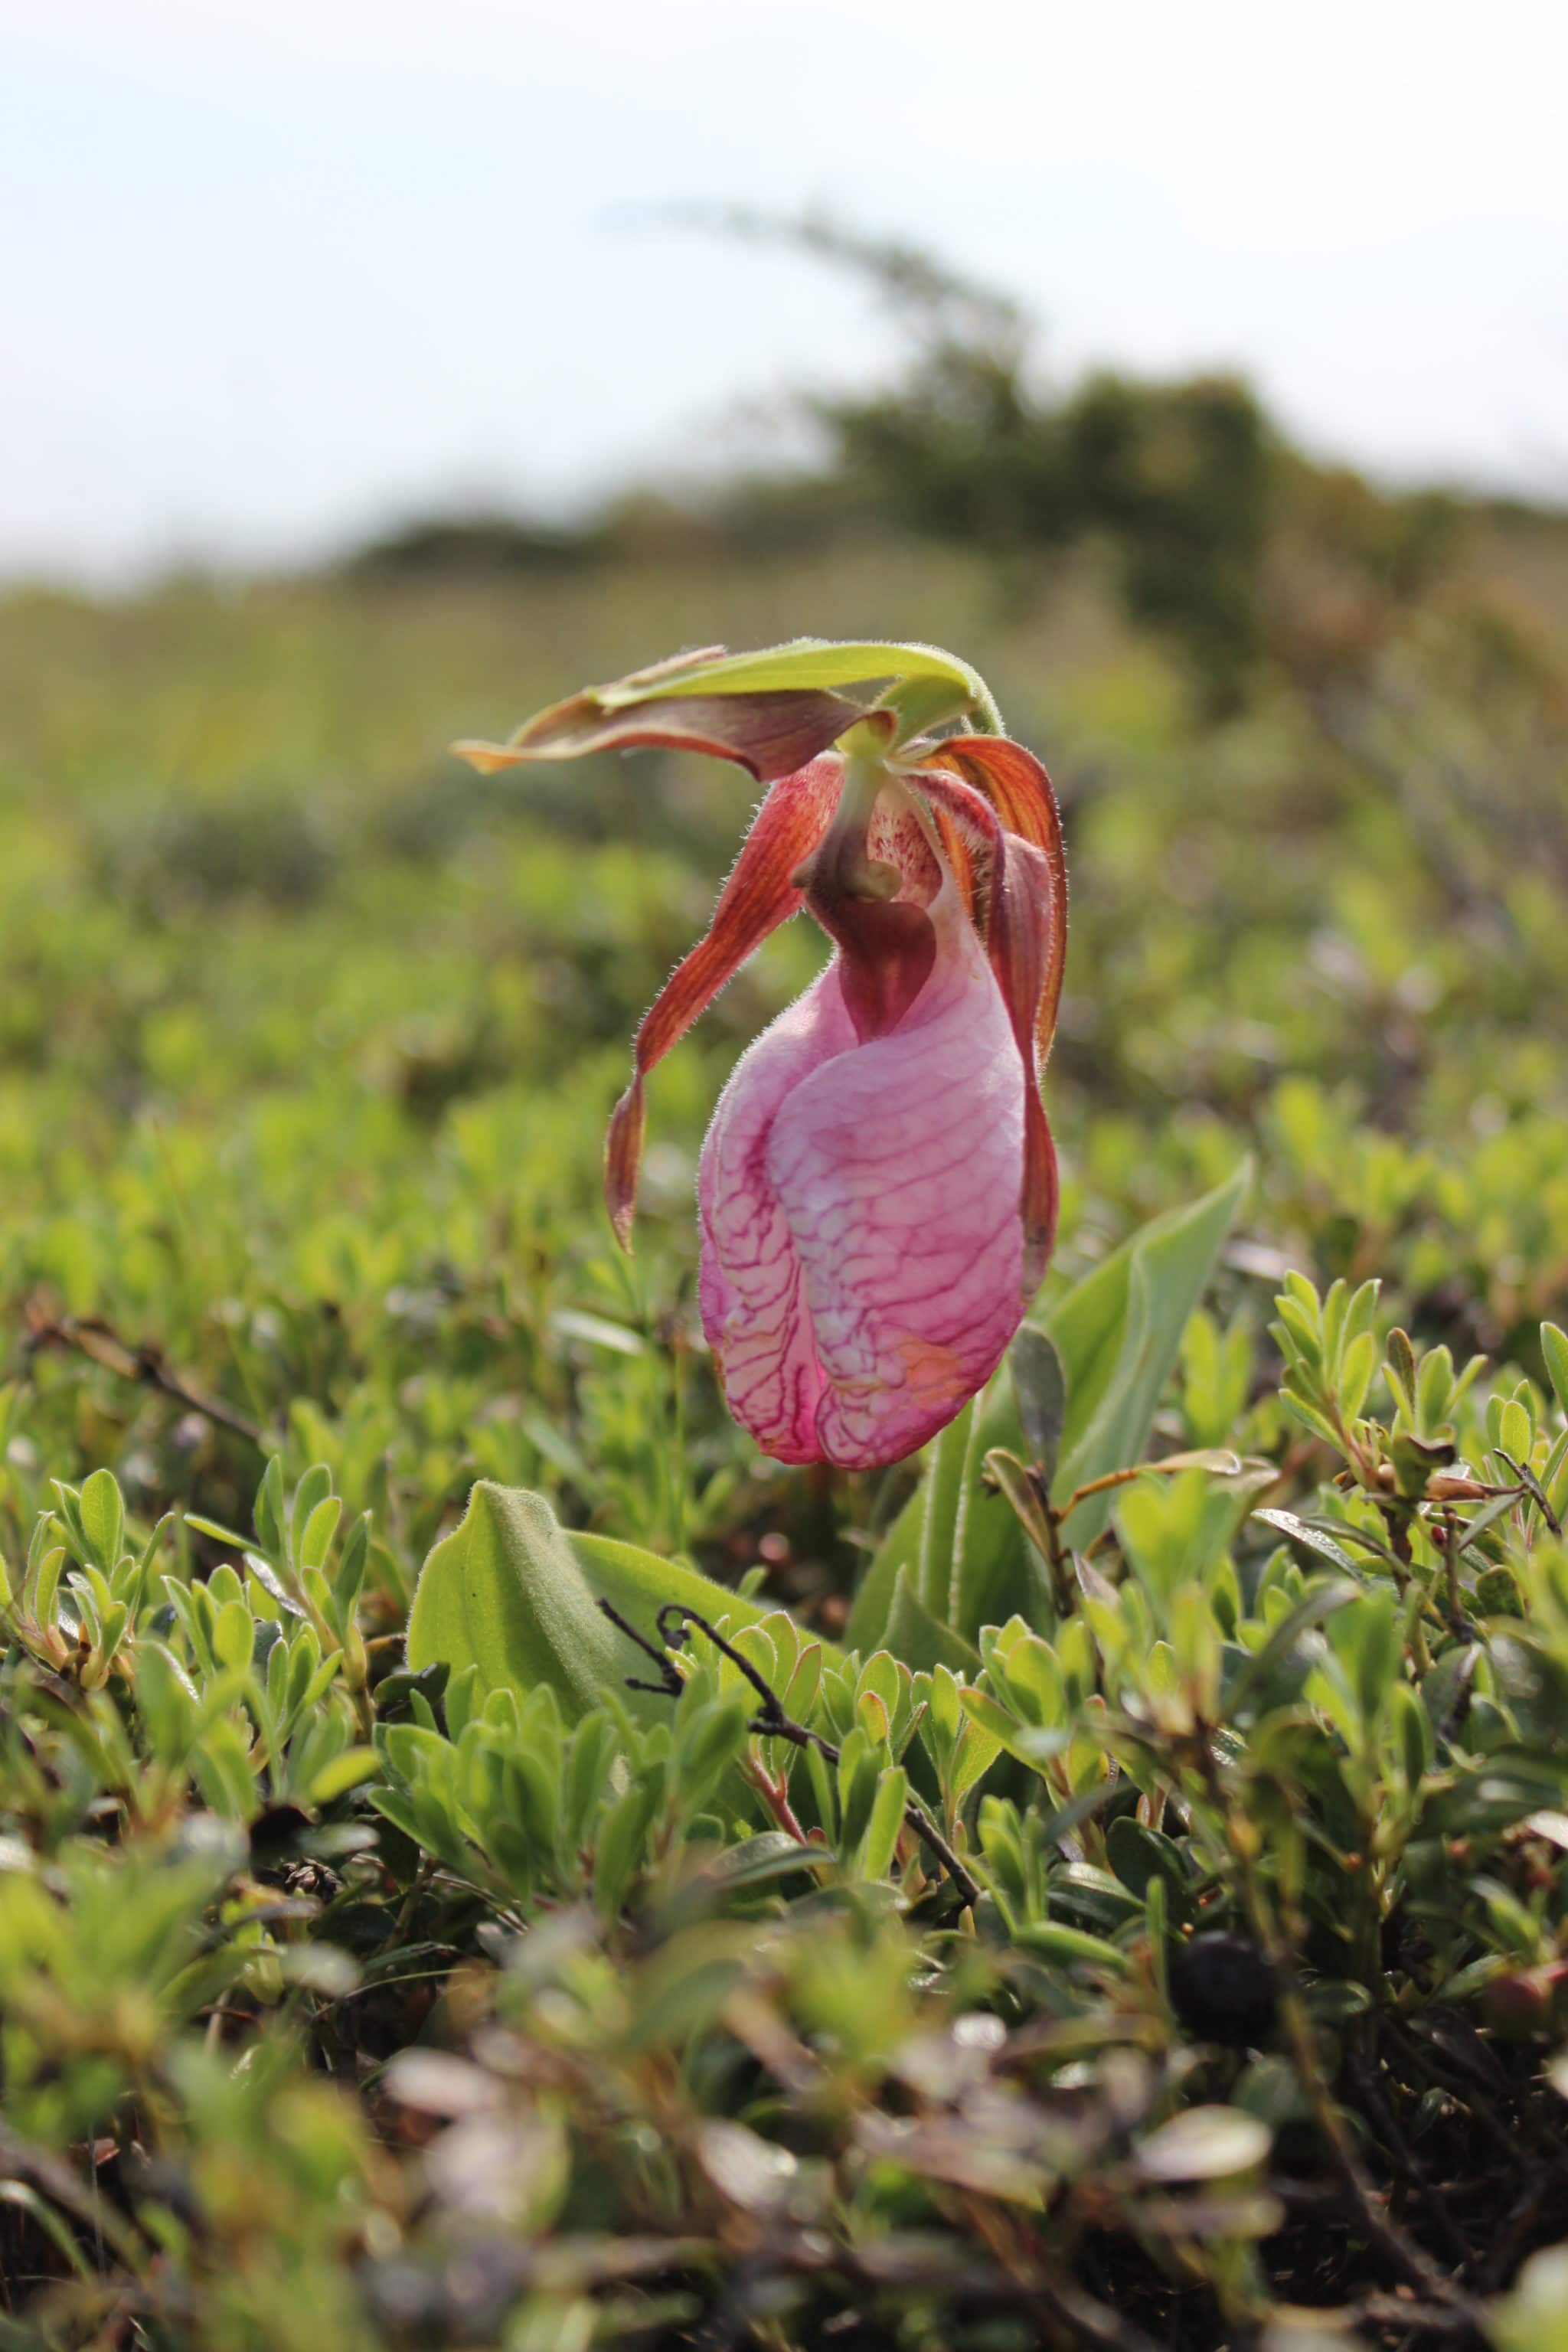 Pink lady's slipper (Cypripedium acaule) in flower on Coatue